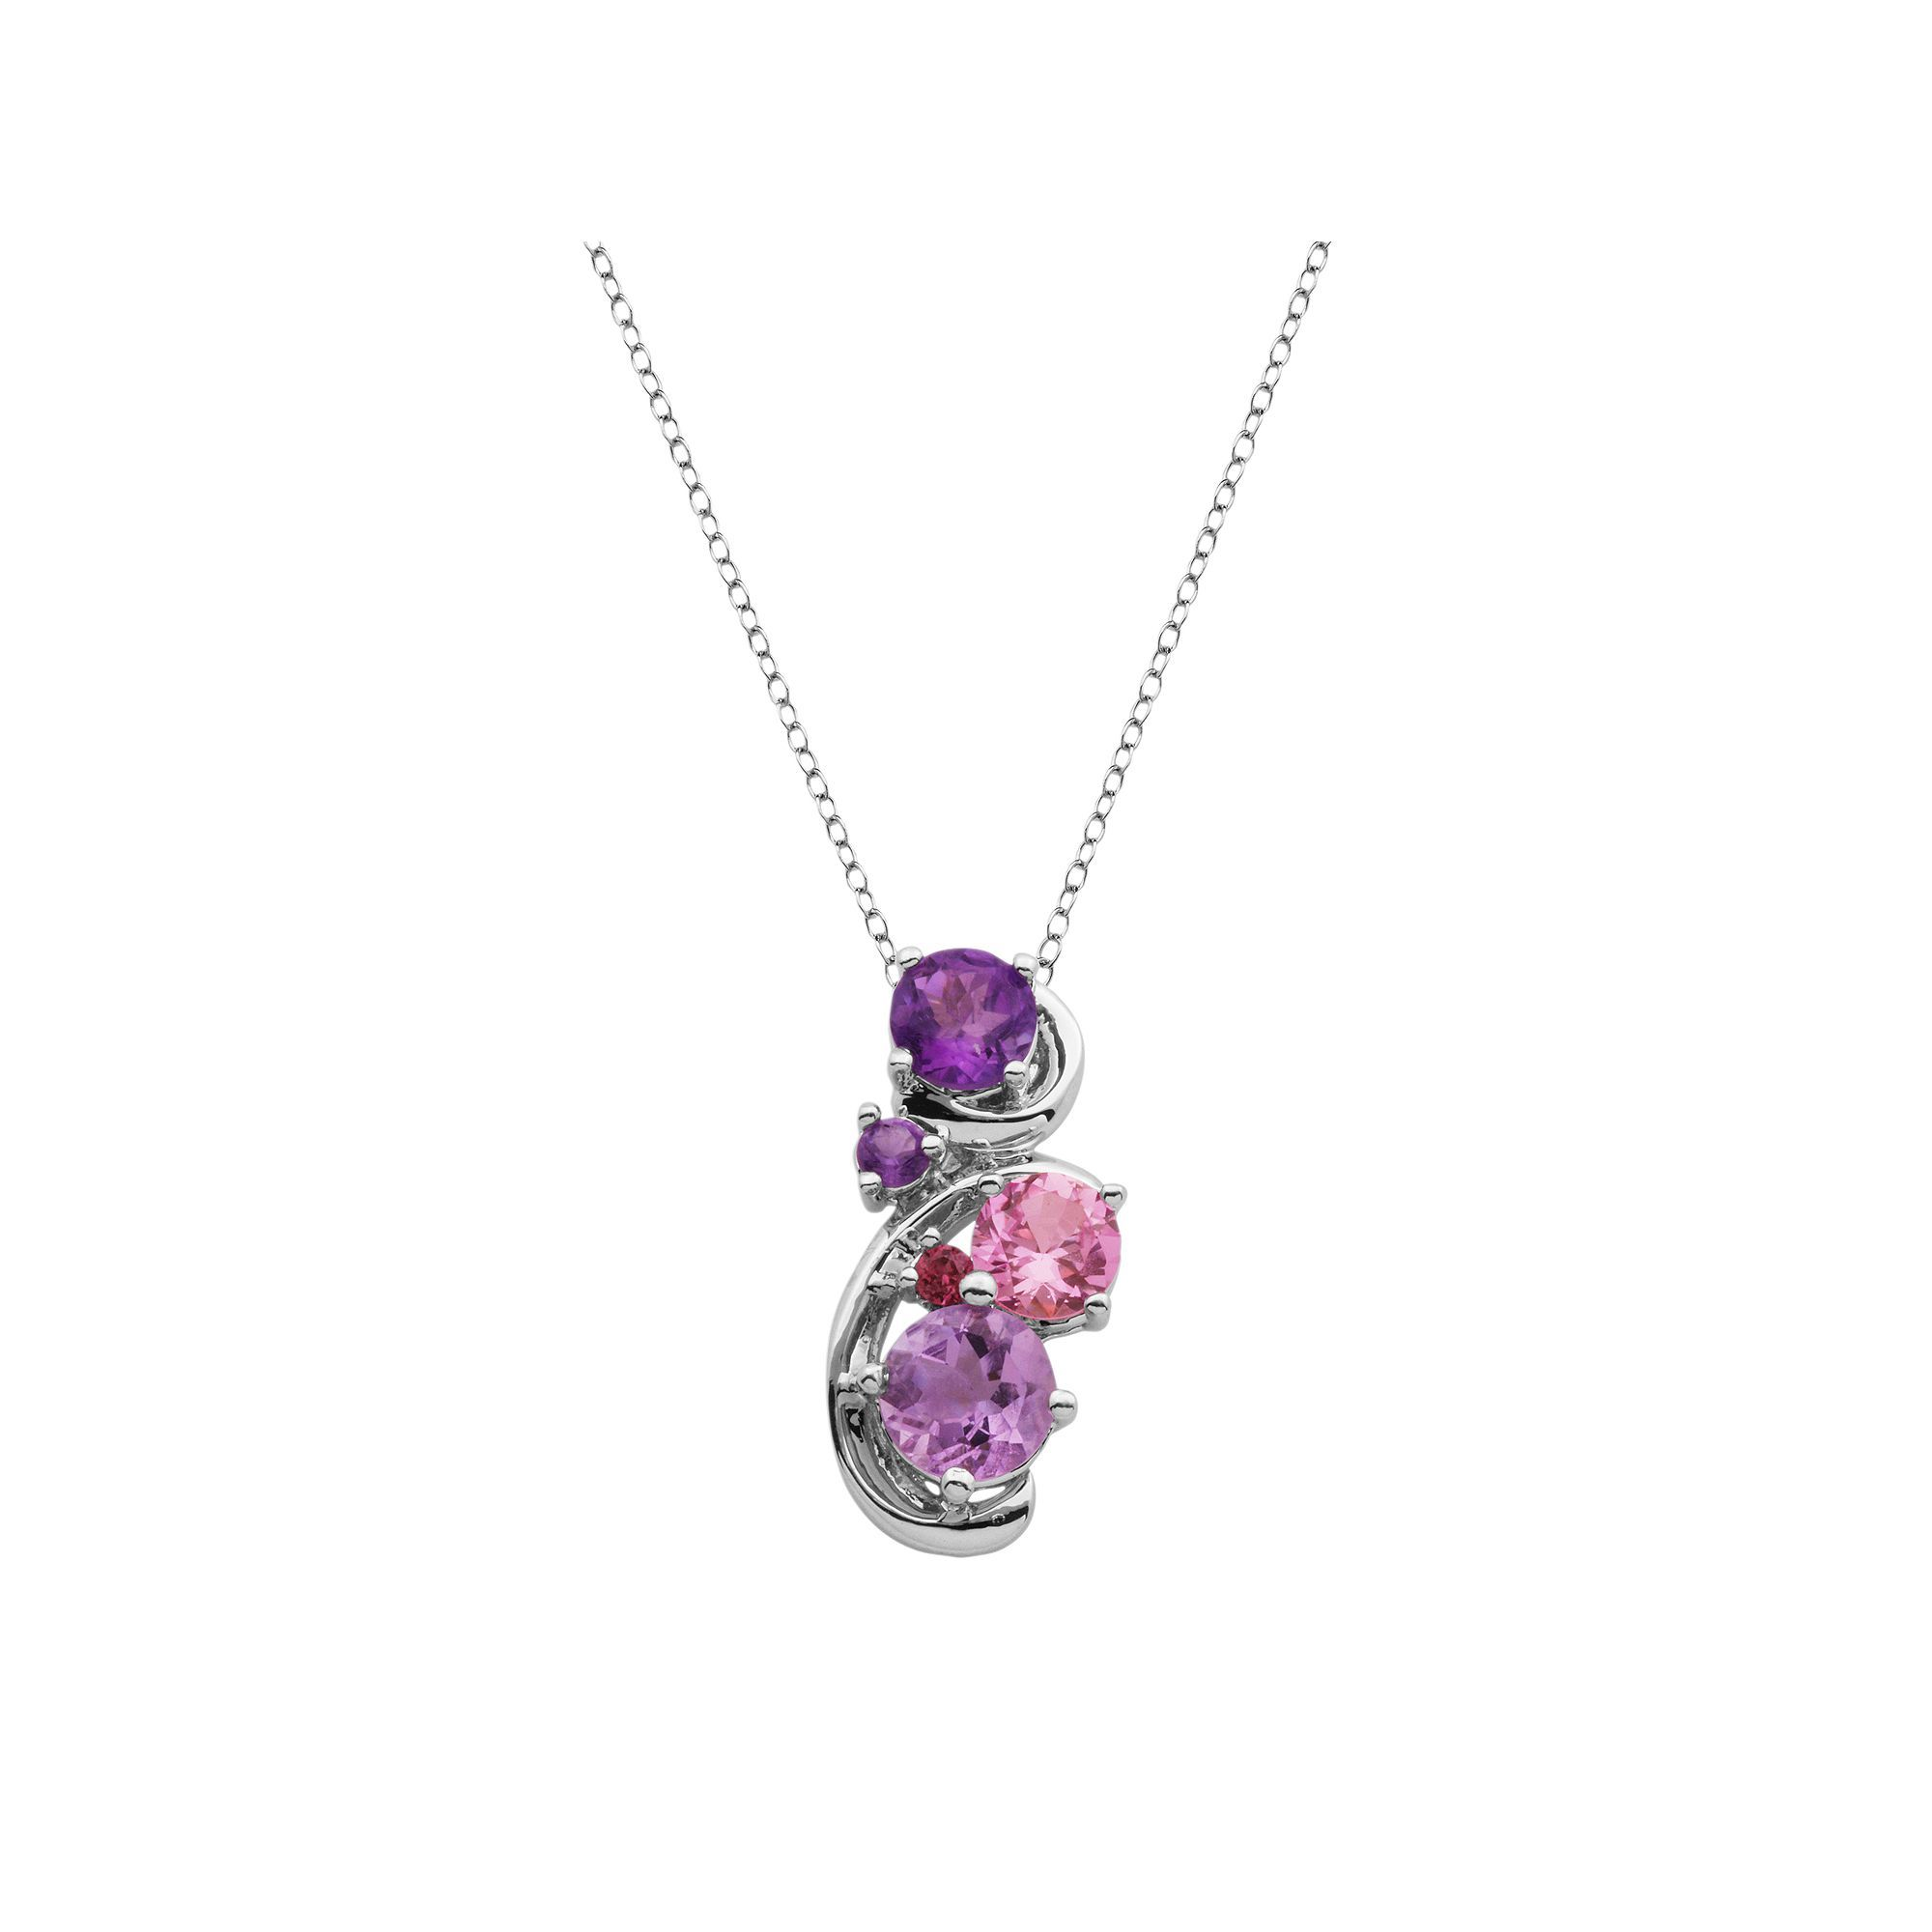 silver necklace double tourmaline rhodolite garnet watermelon products detail pendant robinson chain gold stephanie